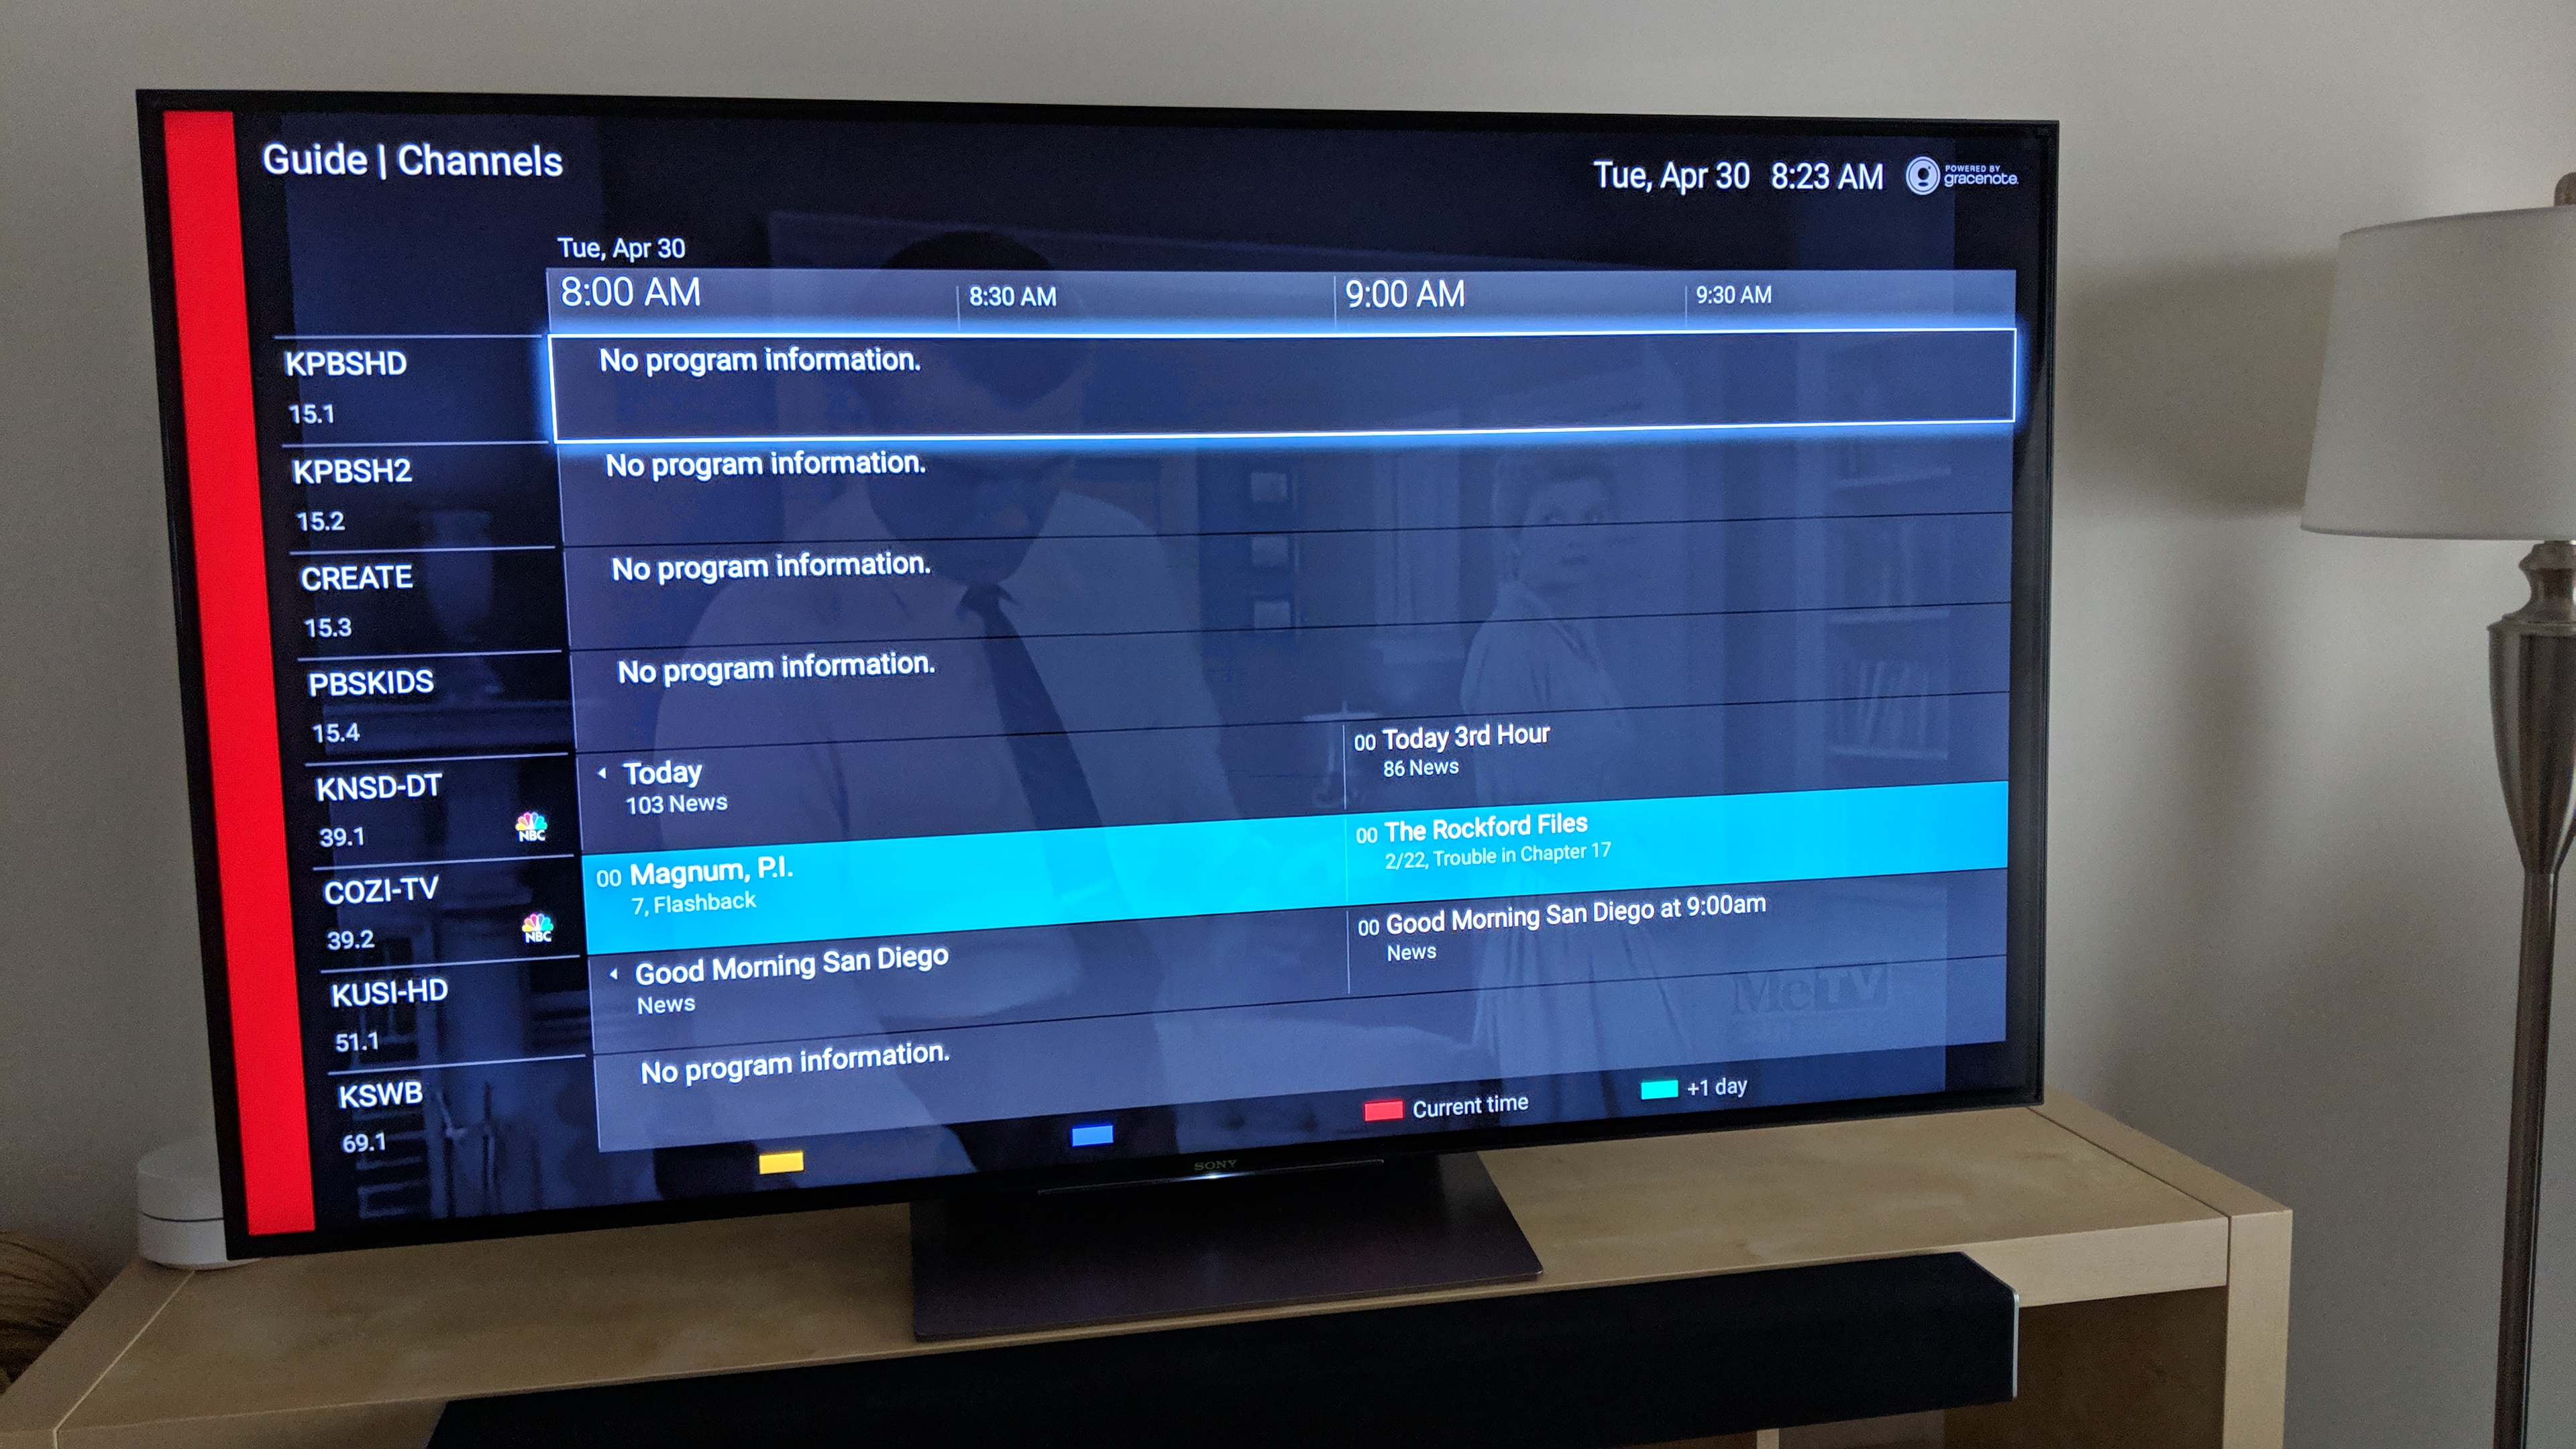 Android tv OTA program guide not being populated for